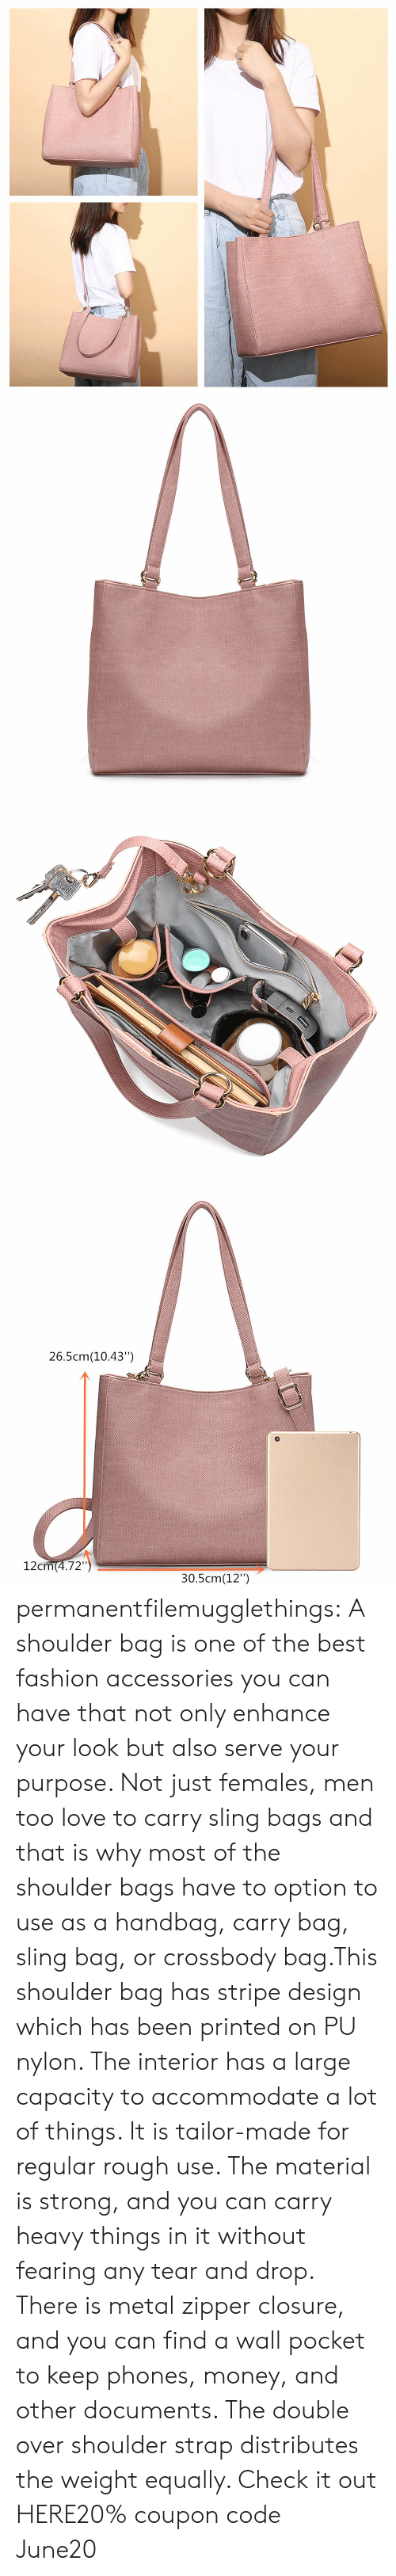 """closure: 26.5cm(10.43"""")  12cm(4.72"""")  30.5cm(12"""") permanentfilemugglethings:  A shoulder bag is one of the best fashion accessories you can have that not only enhance your look but also serve your purpose. Not just females, men too love to carry sling bags and that is why most of the shoulder bags have to option to use as a handbag, carry bag, sling bag, or crossbody bag.This shoulder bag has stripe design which has been printed on PU nylon. The interior has a large capacity to accommodate a lot of things. It is tailor-made for regular rough use. The material is strong, and you can carry heavy things in it without fearing any tear and drop. There is metal zipper closure, and you can find a wall pocket to keep phones, money, and other documents. The double over shoulder strap distributes the weight equally. Check it out HERE20% coupon code: June20"""